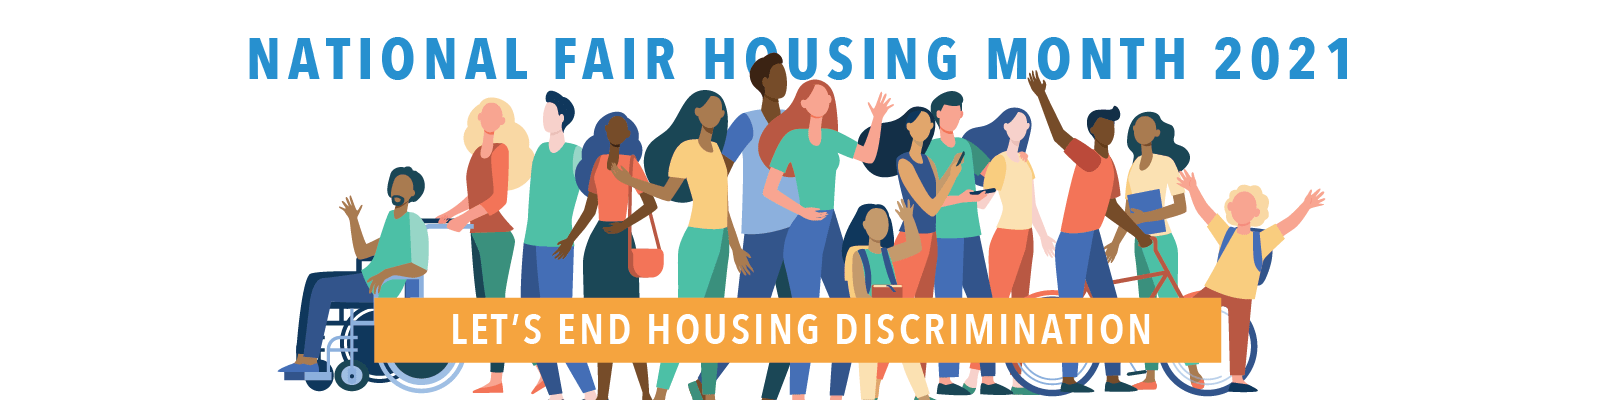 Group of people under text saying Fair Housing Month 2021 and let's end housing discrimination